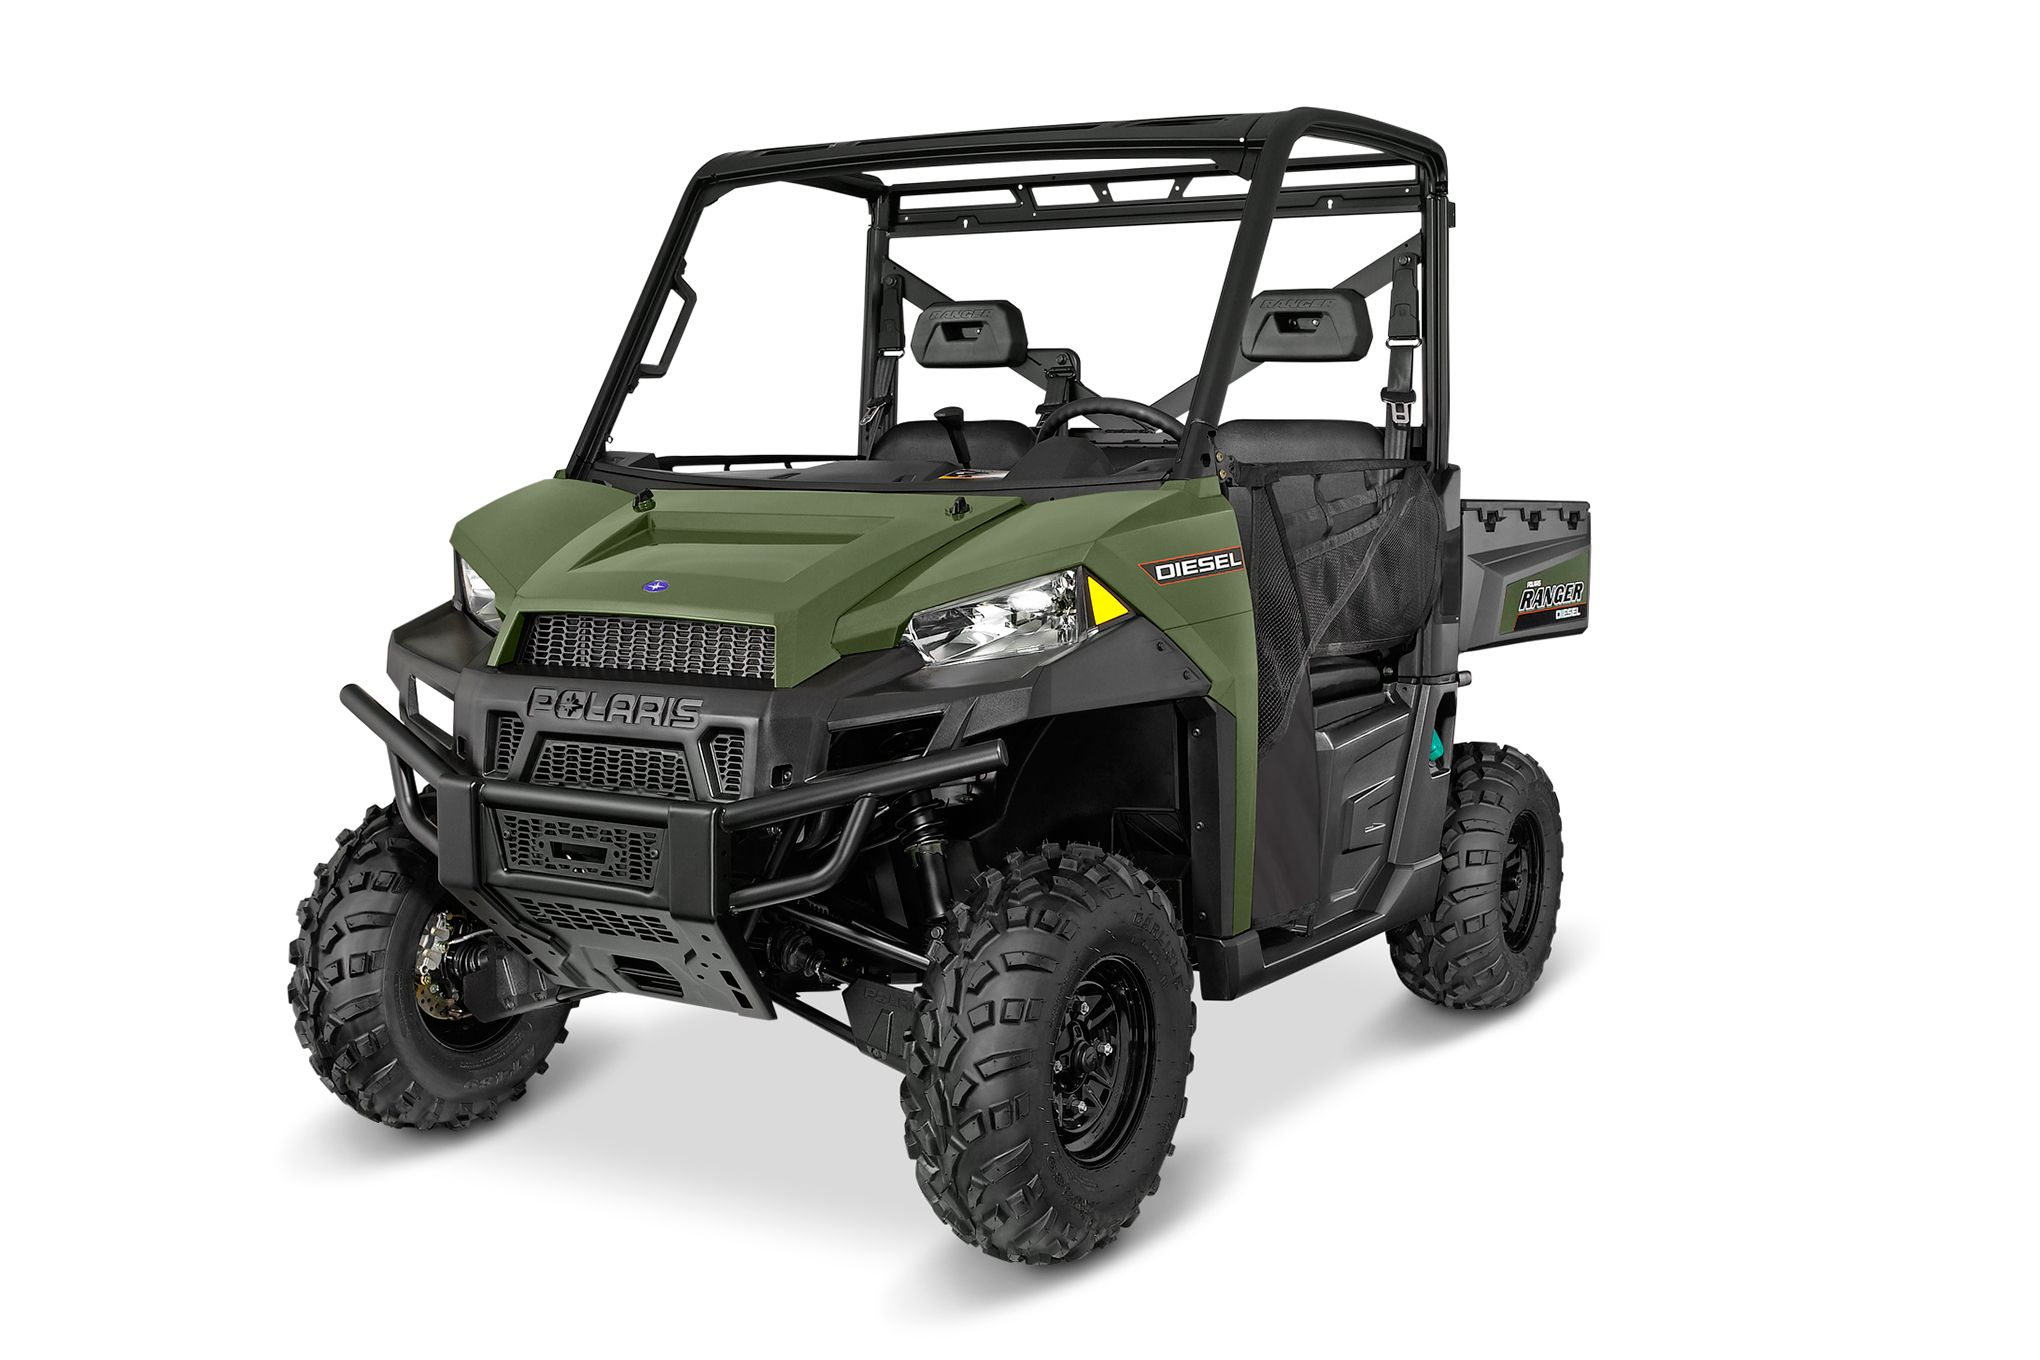 Polaris ranger photo - 8